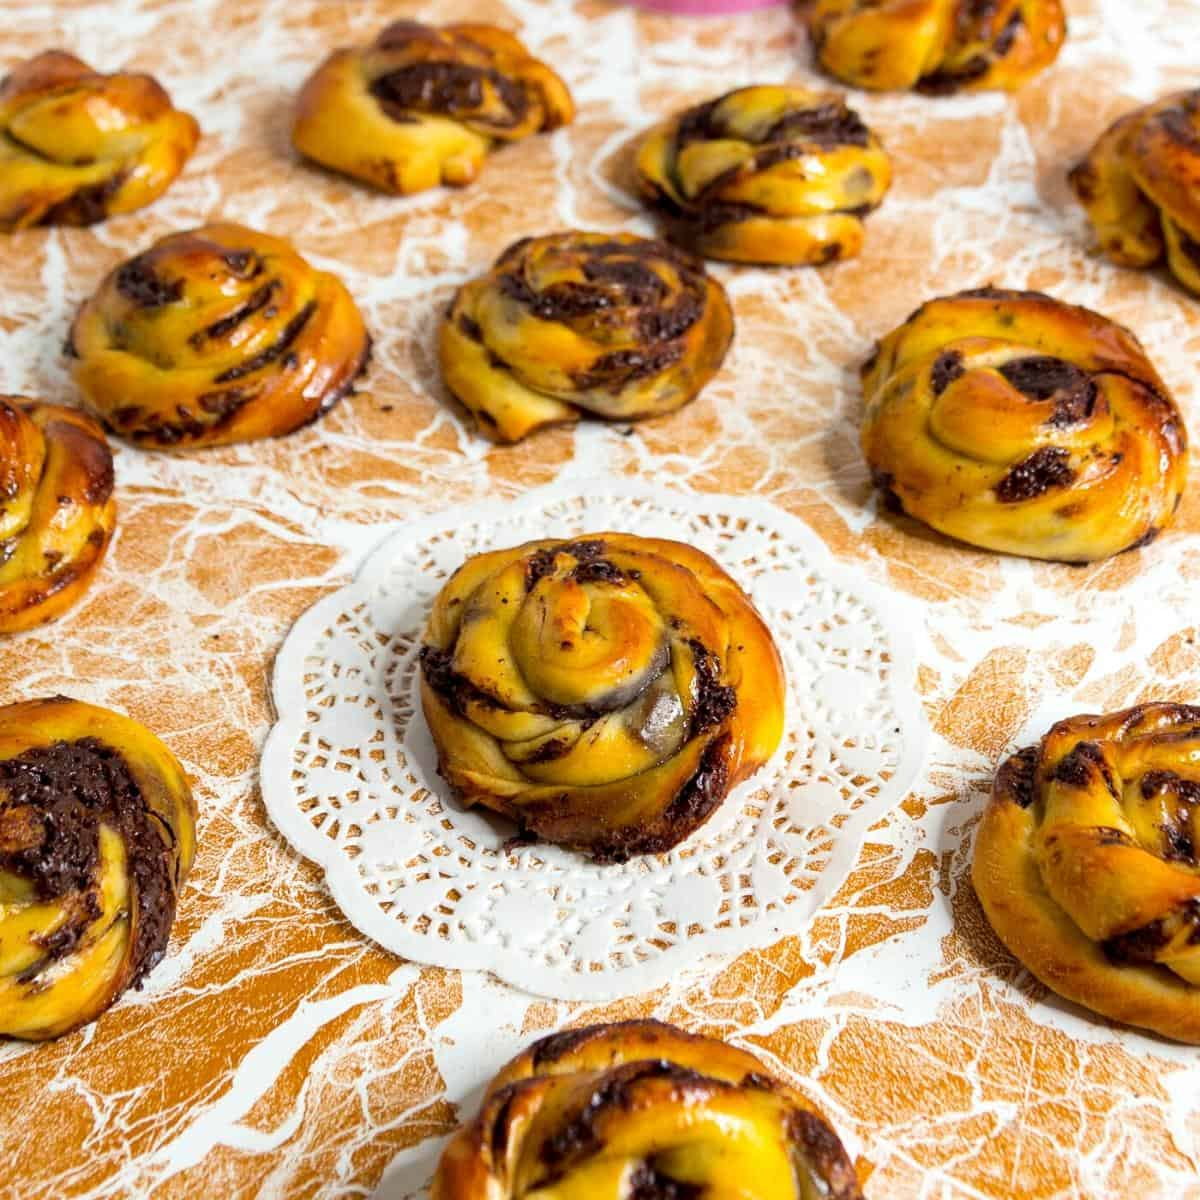 How to make Jewish rugelach rolls with chocolate